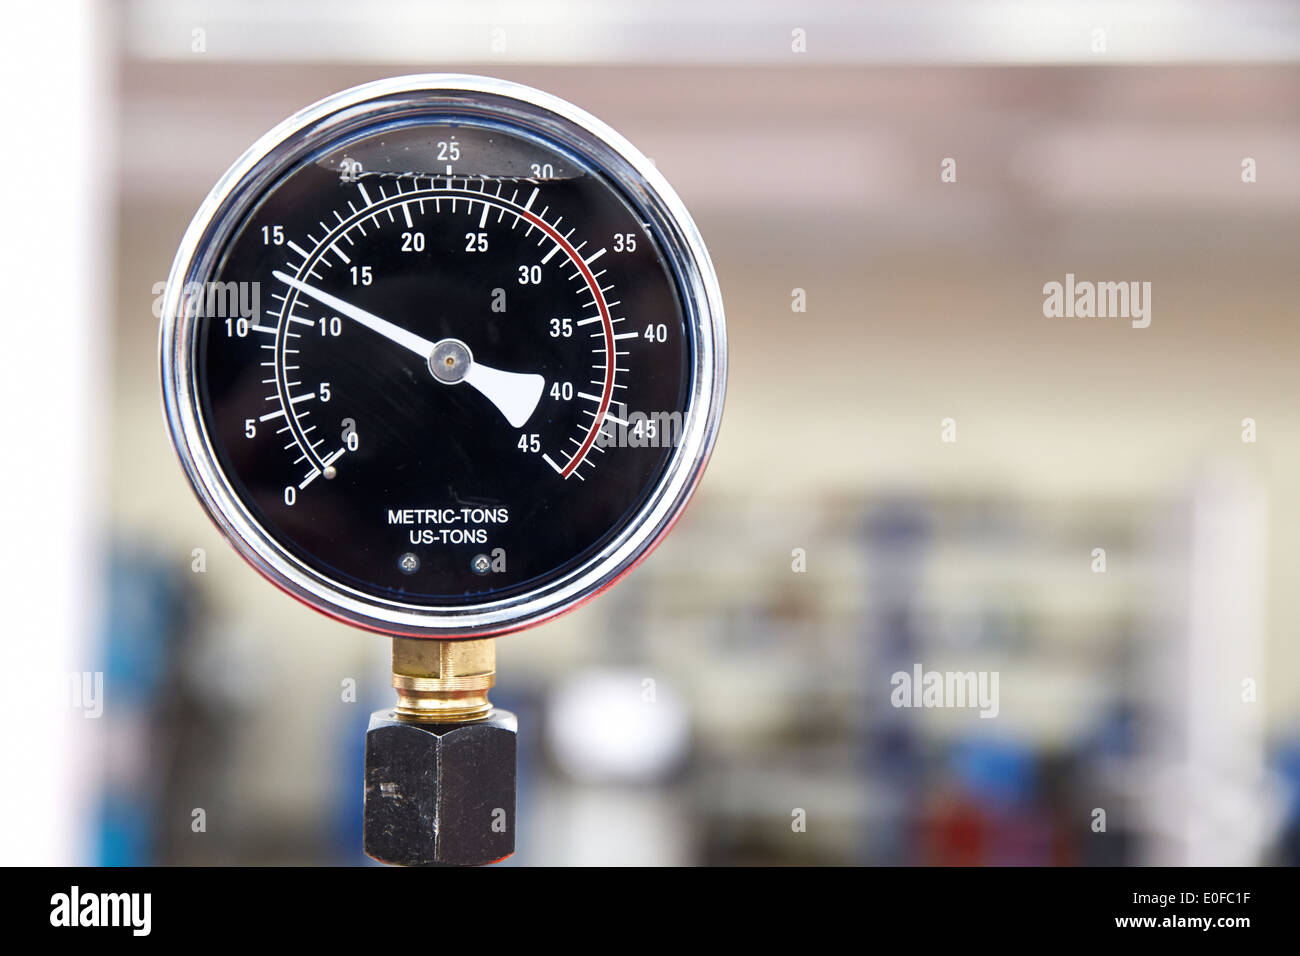 A pressure dial, sensor or monitor on a factory floor in a manufacturing plant. - Stock Image